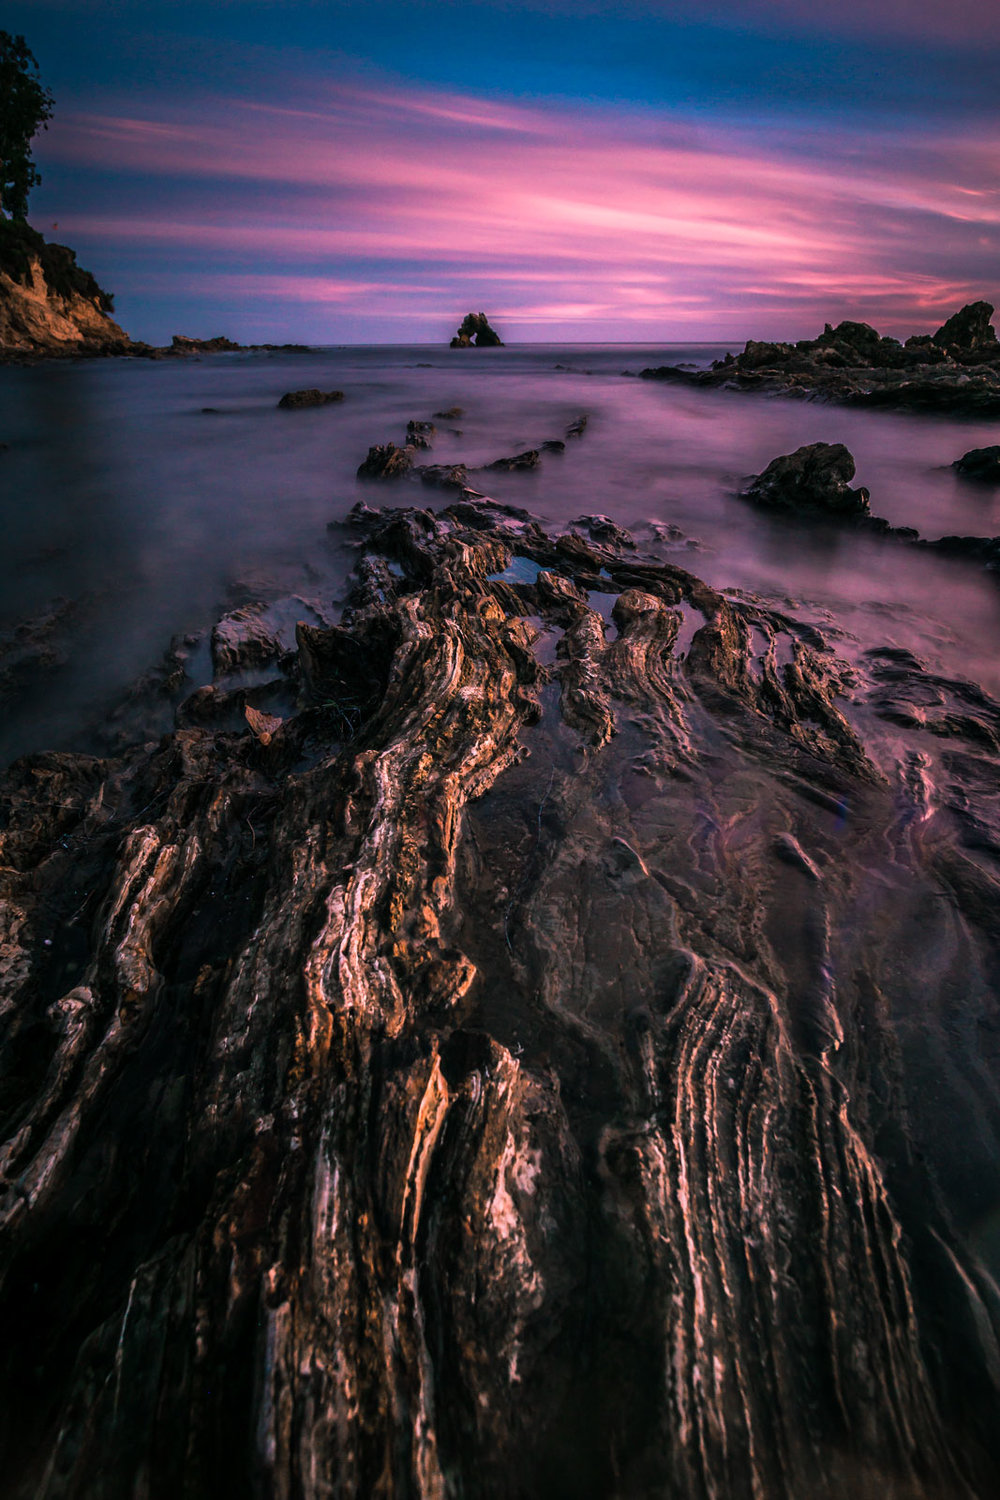 3_little-corona-beach-seascape_Joseph-Barber-Studios.jpg